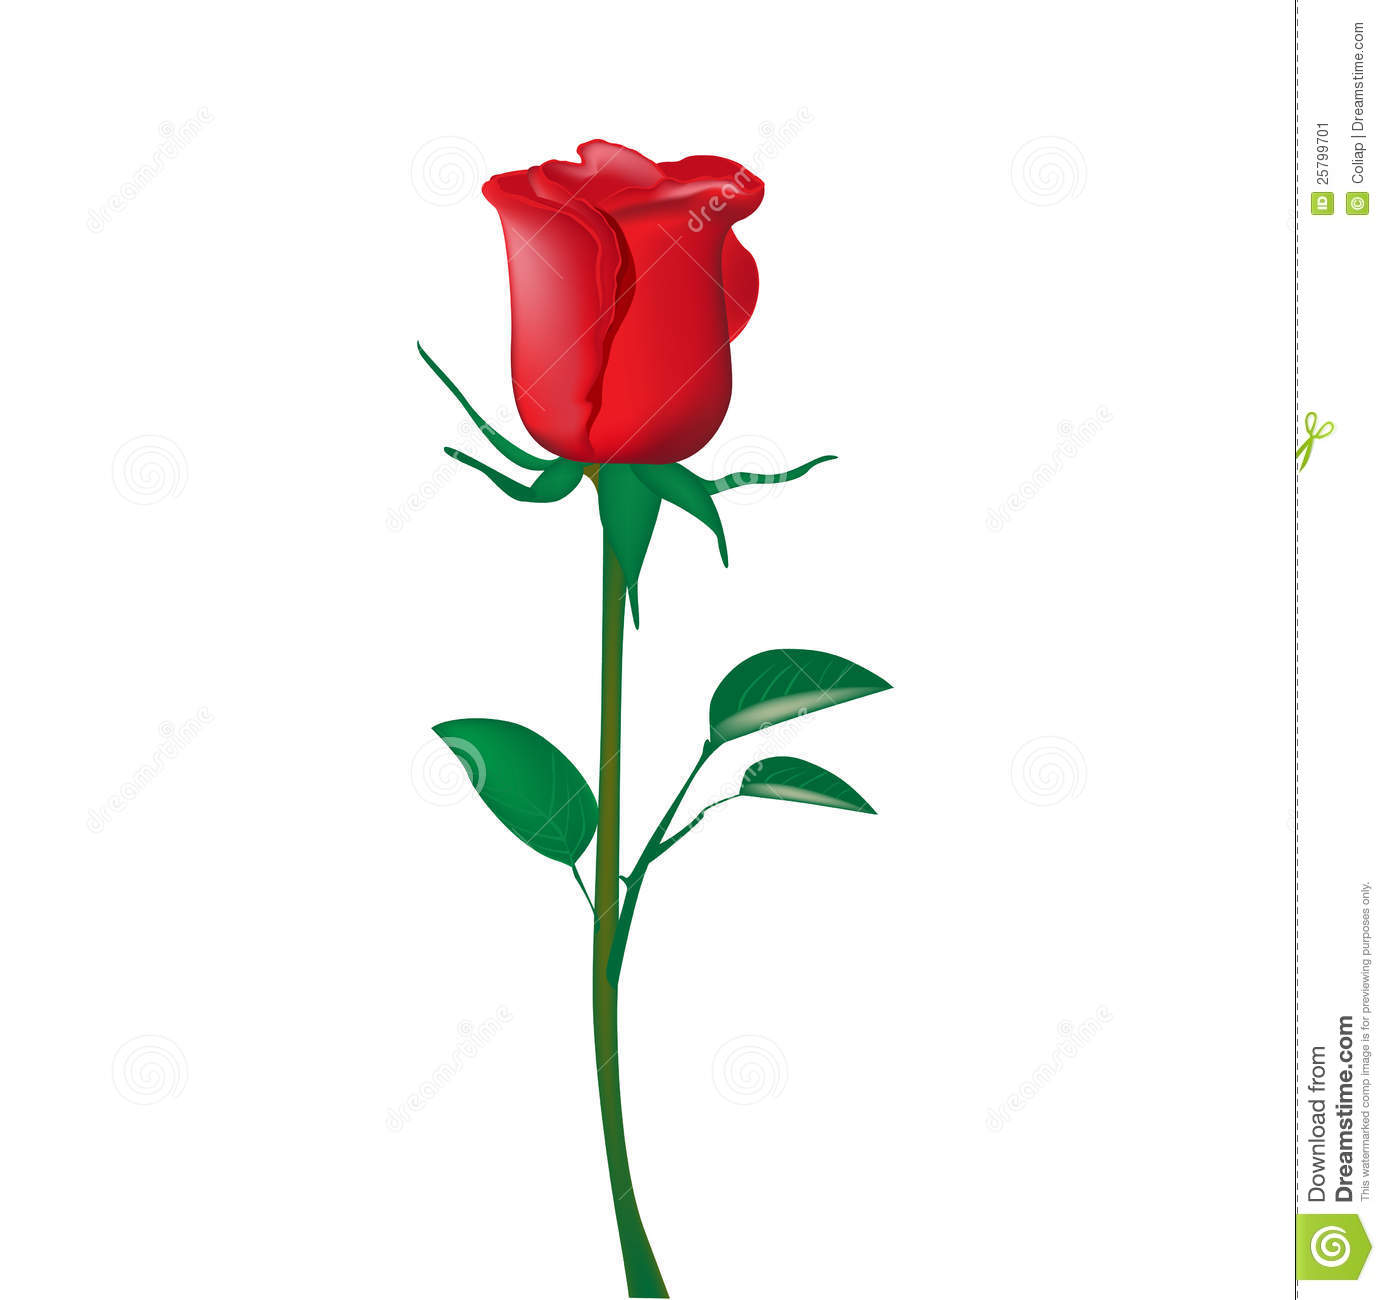 3D clipart rose Rose clipart red clipart 3d